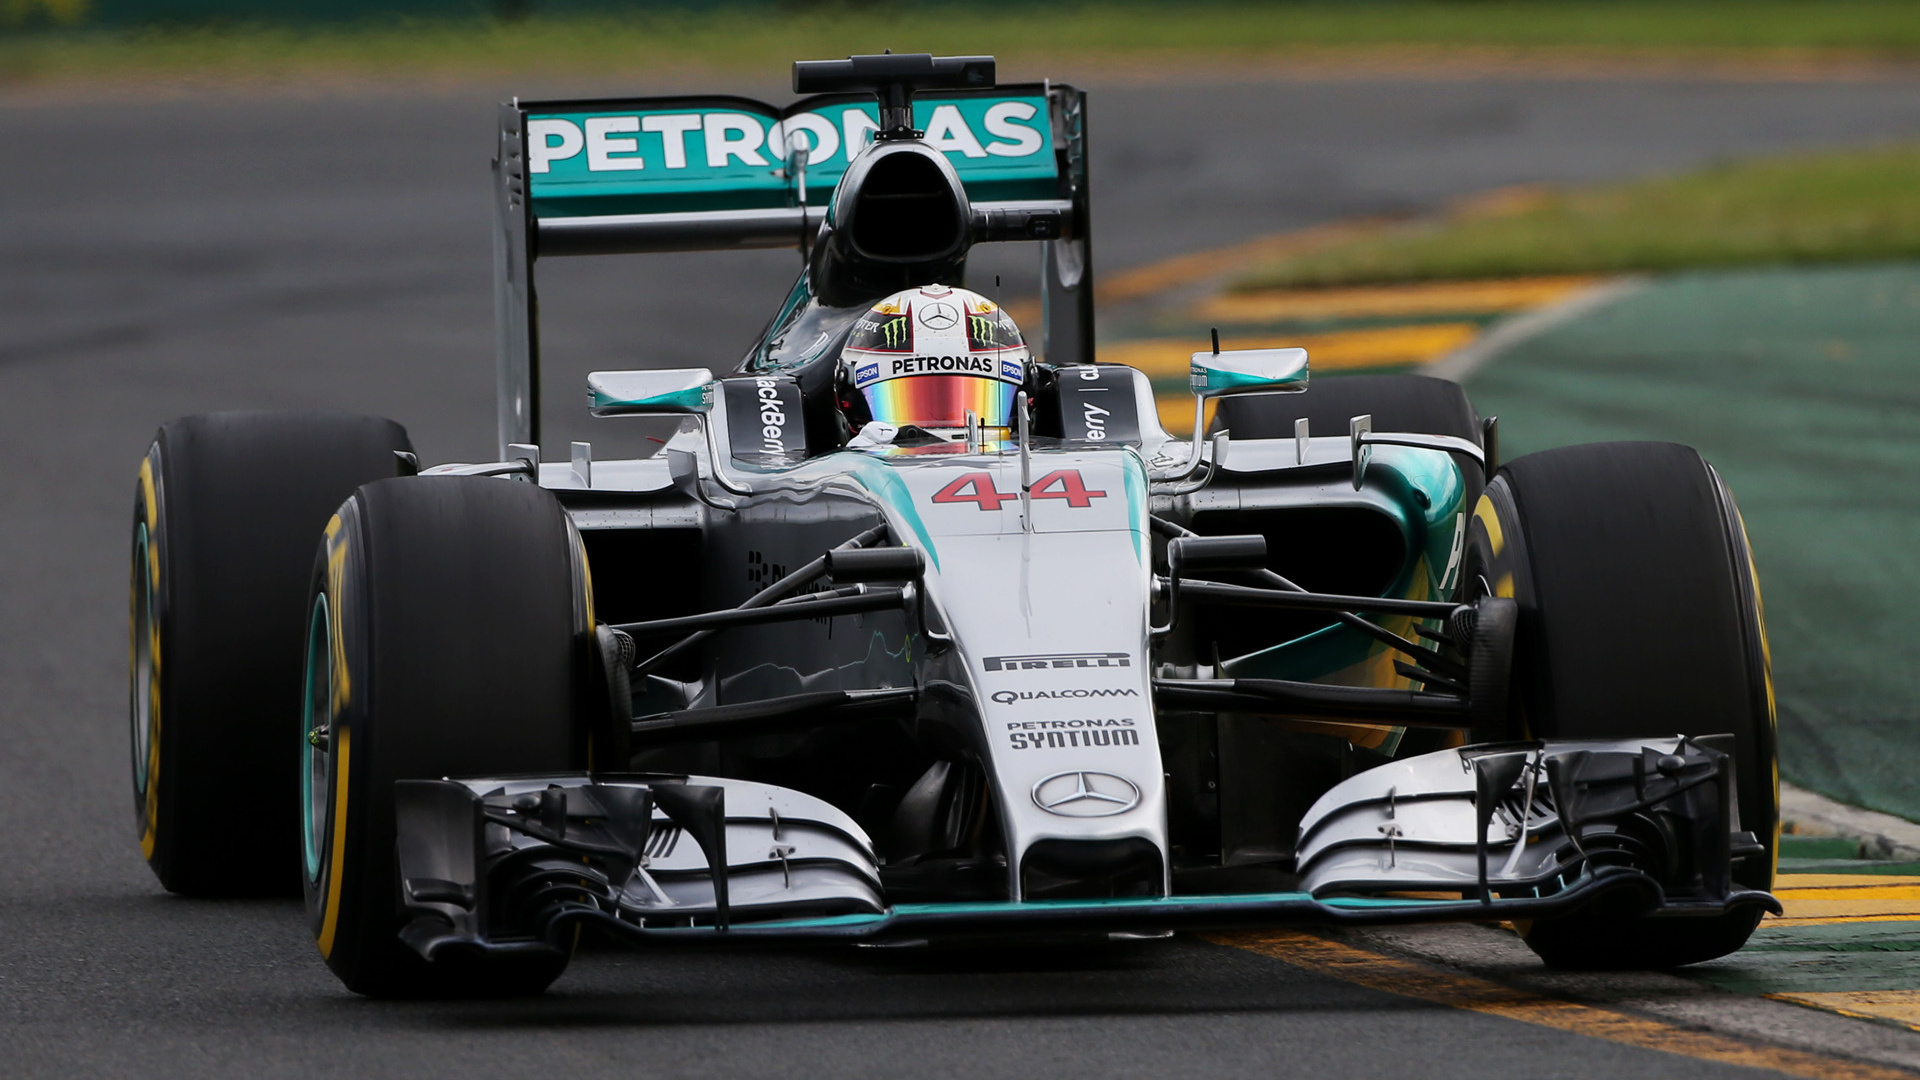 Mercedes-AMG F1 W06 Hybrid (2015) Wallpapers and HD Images ...